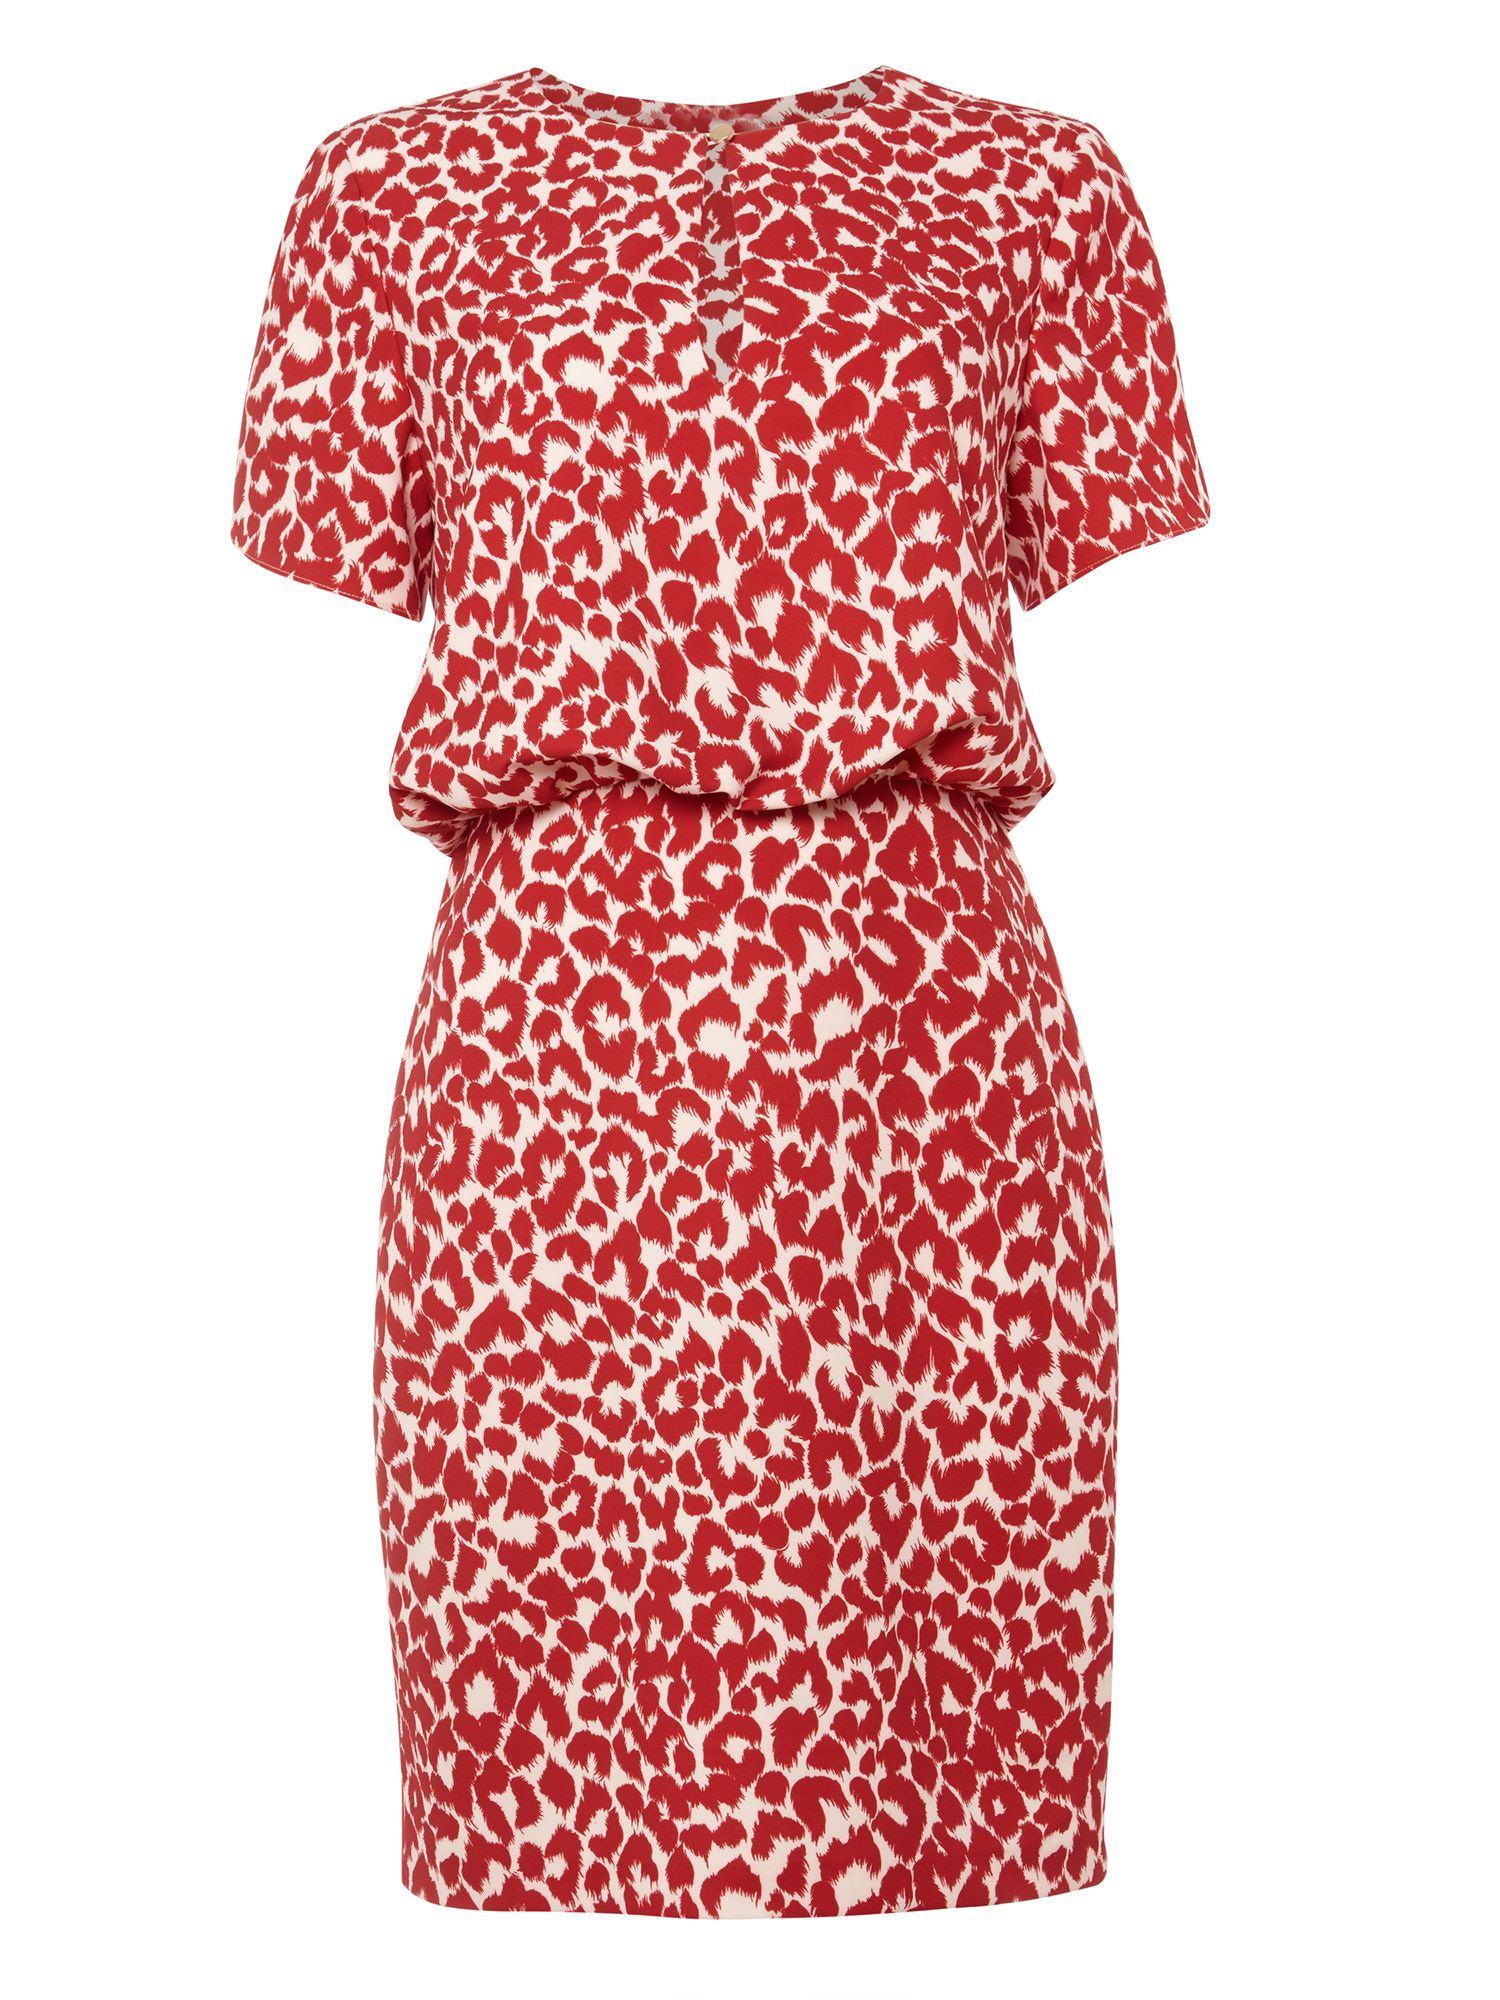 Damsel in a Dress Strawberry Leopard Dress, Red